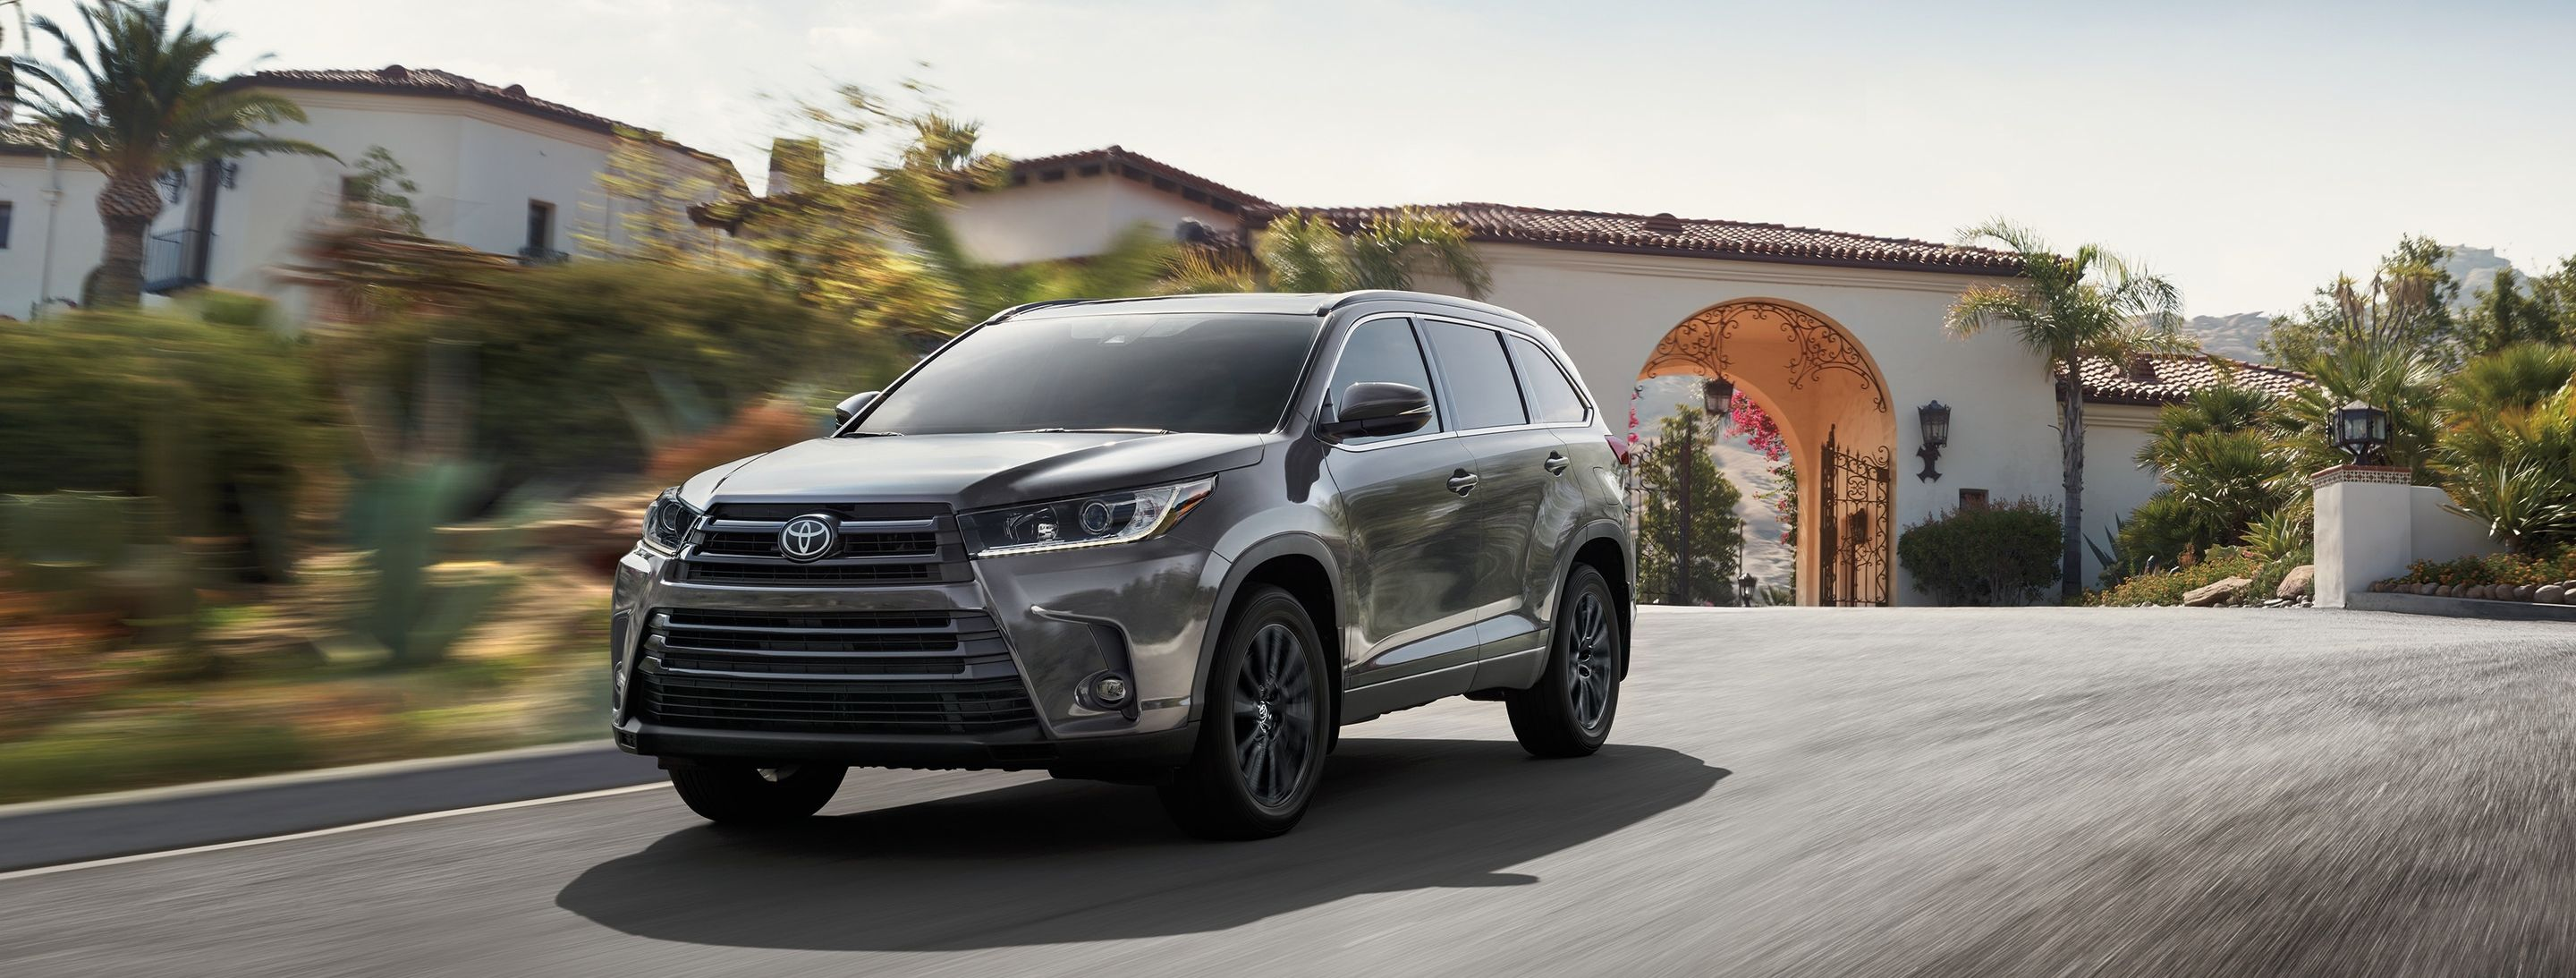 2019 Toyota Highlander Financing near San Jose, CA